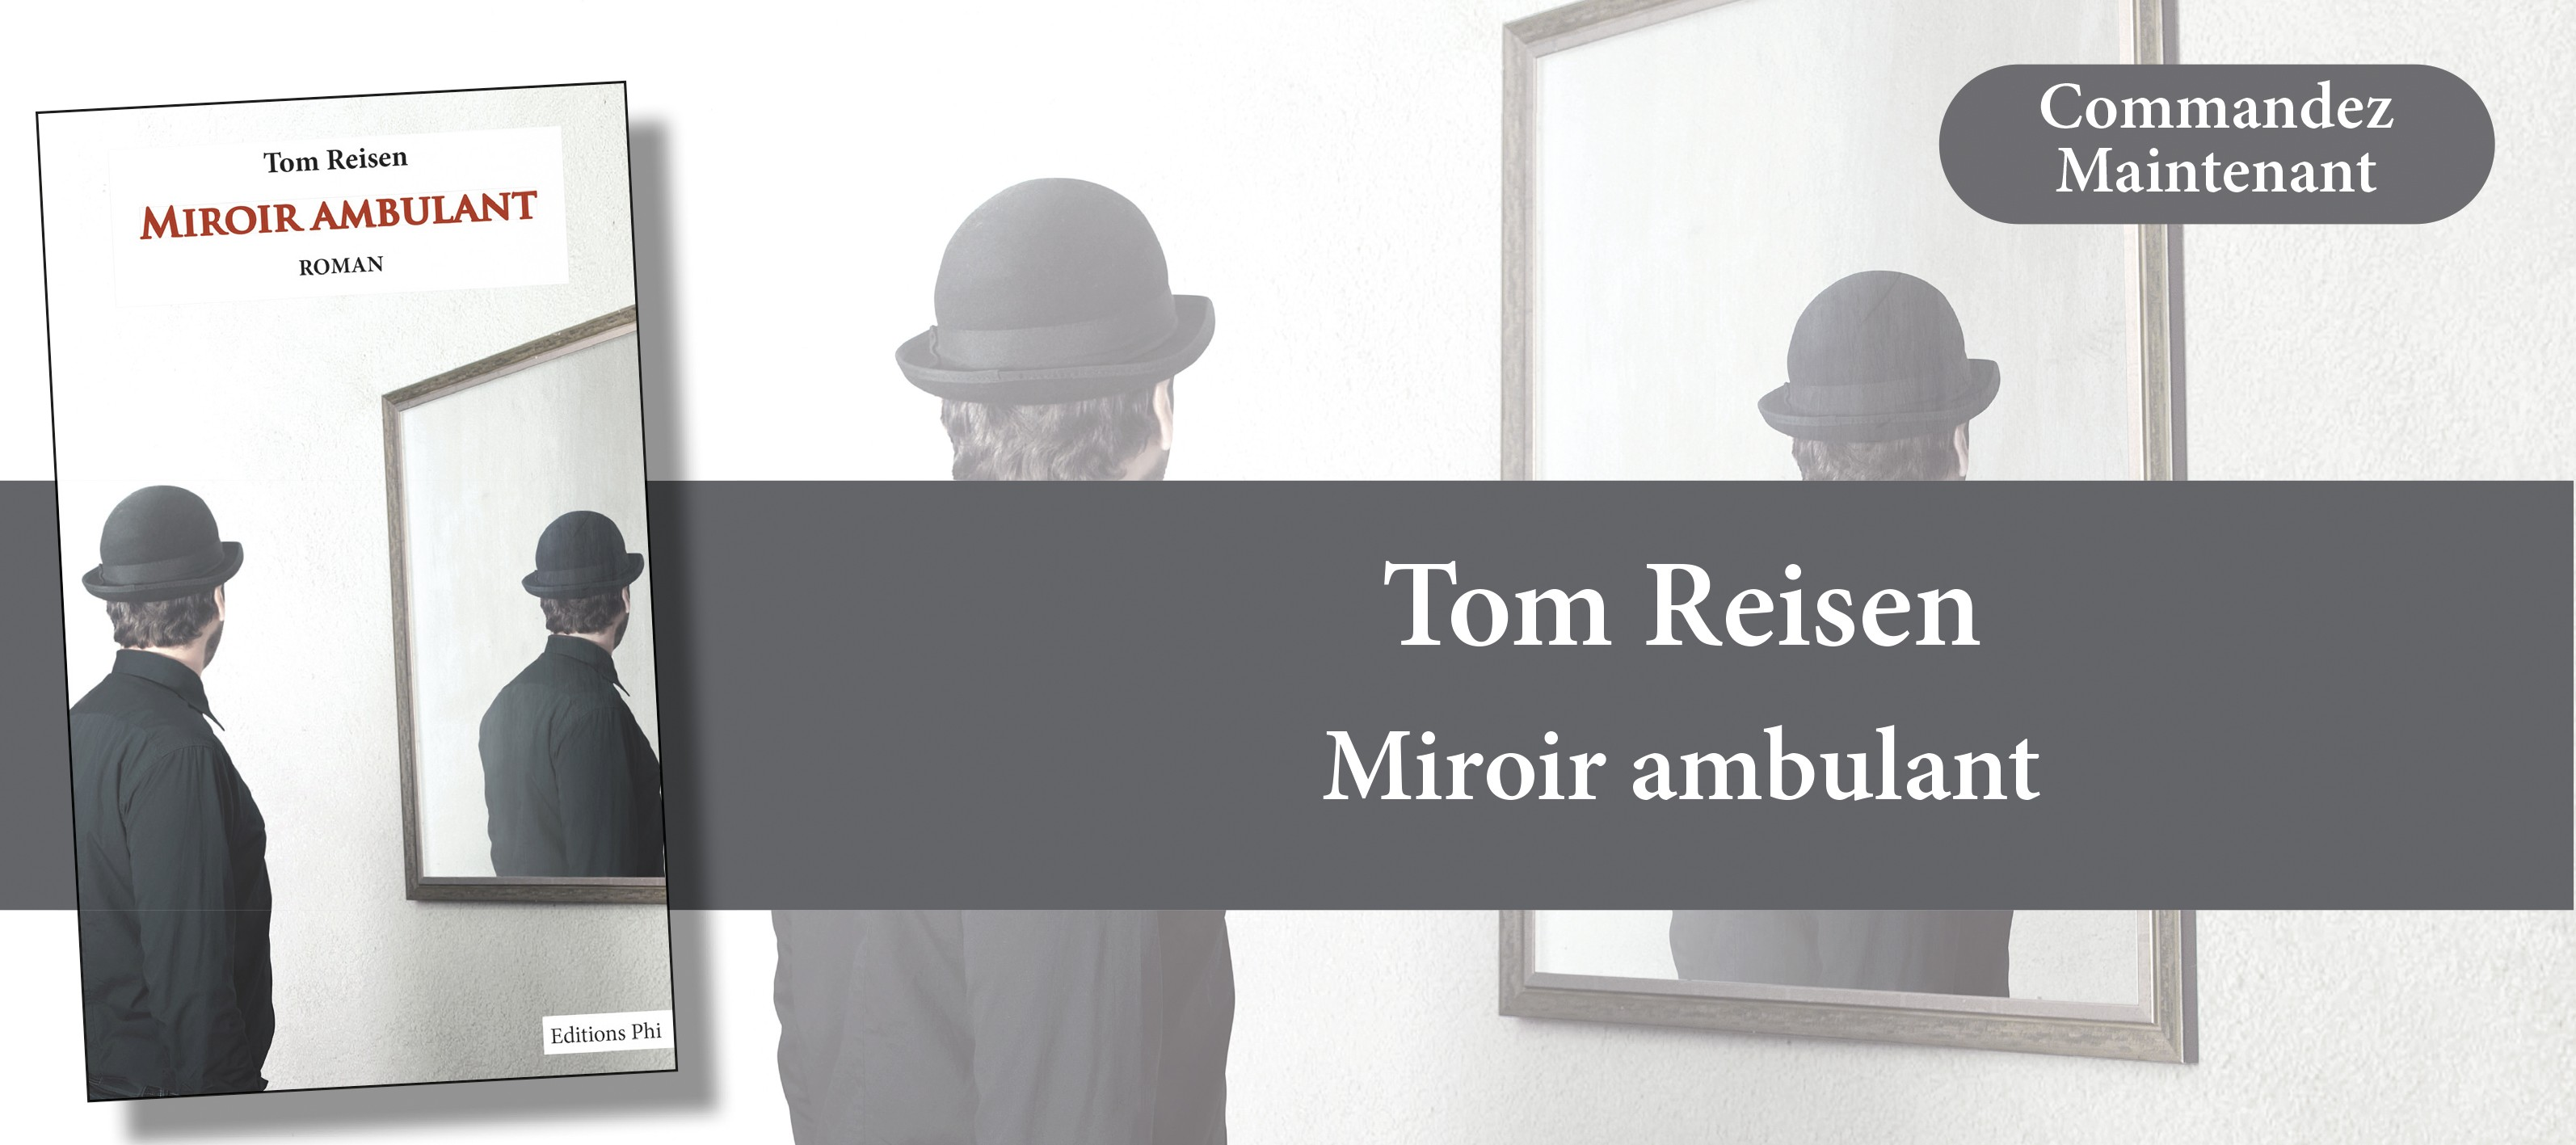 http://www.editionsphi.lu/fr/home/490-tom-reisen-miroir-ambulant.html